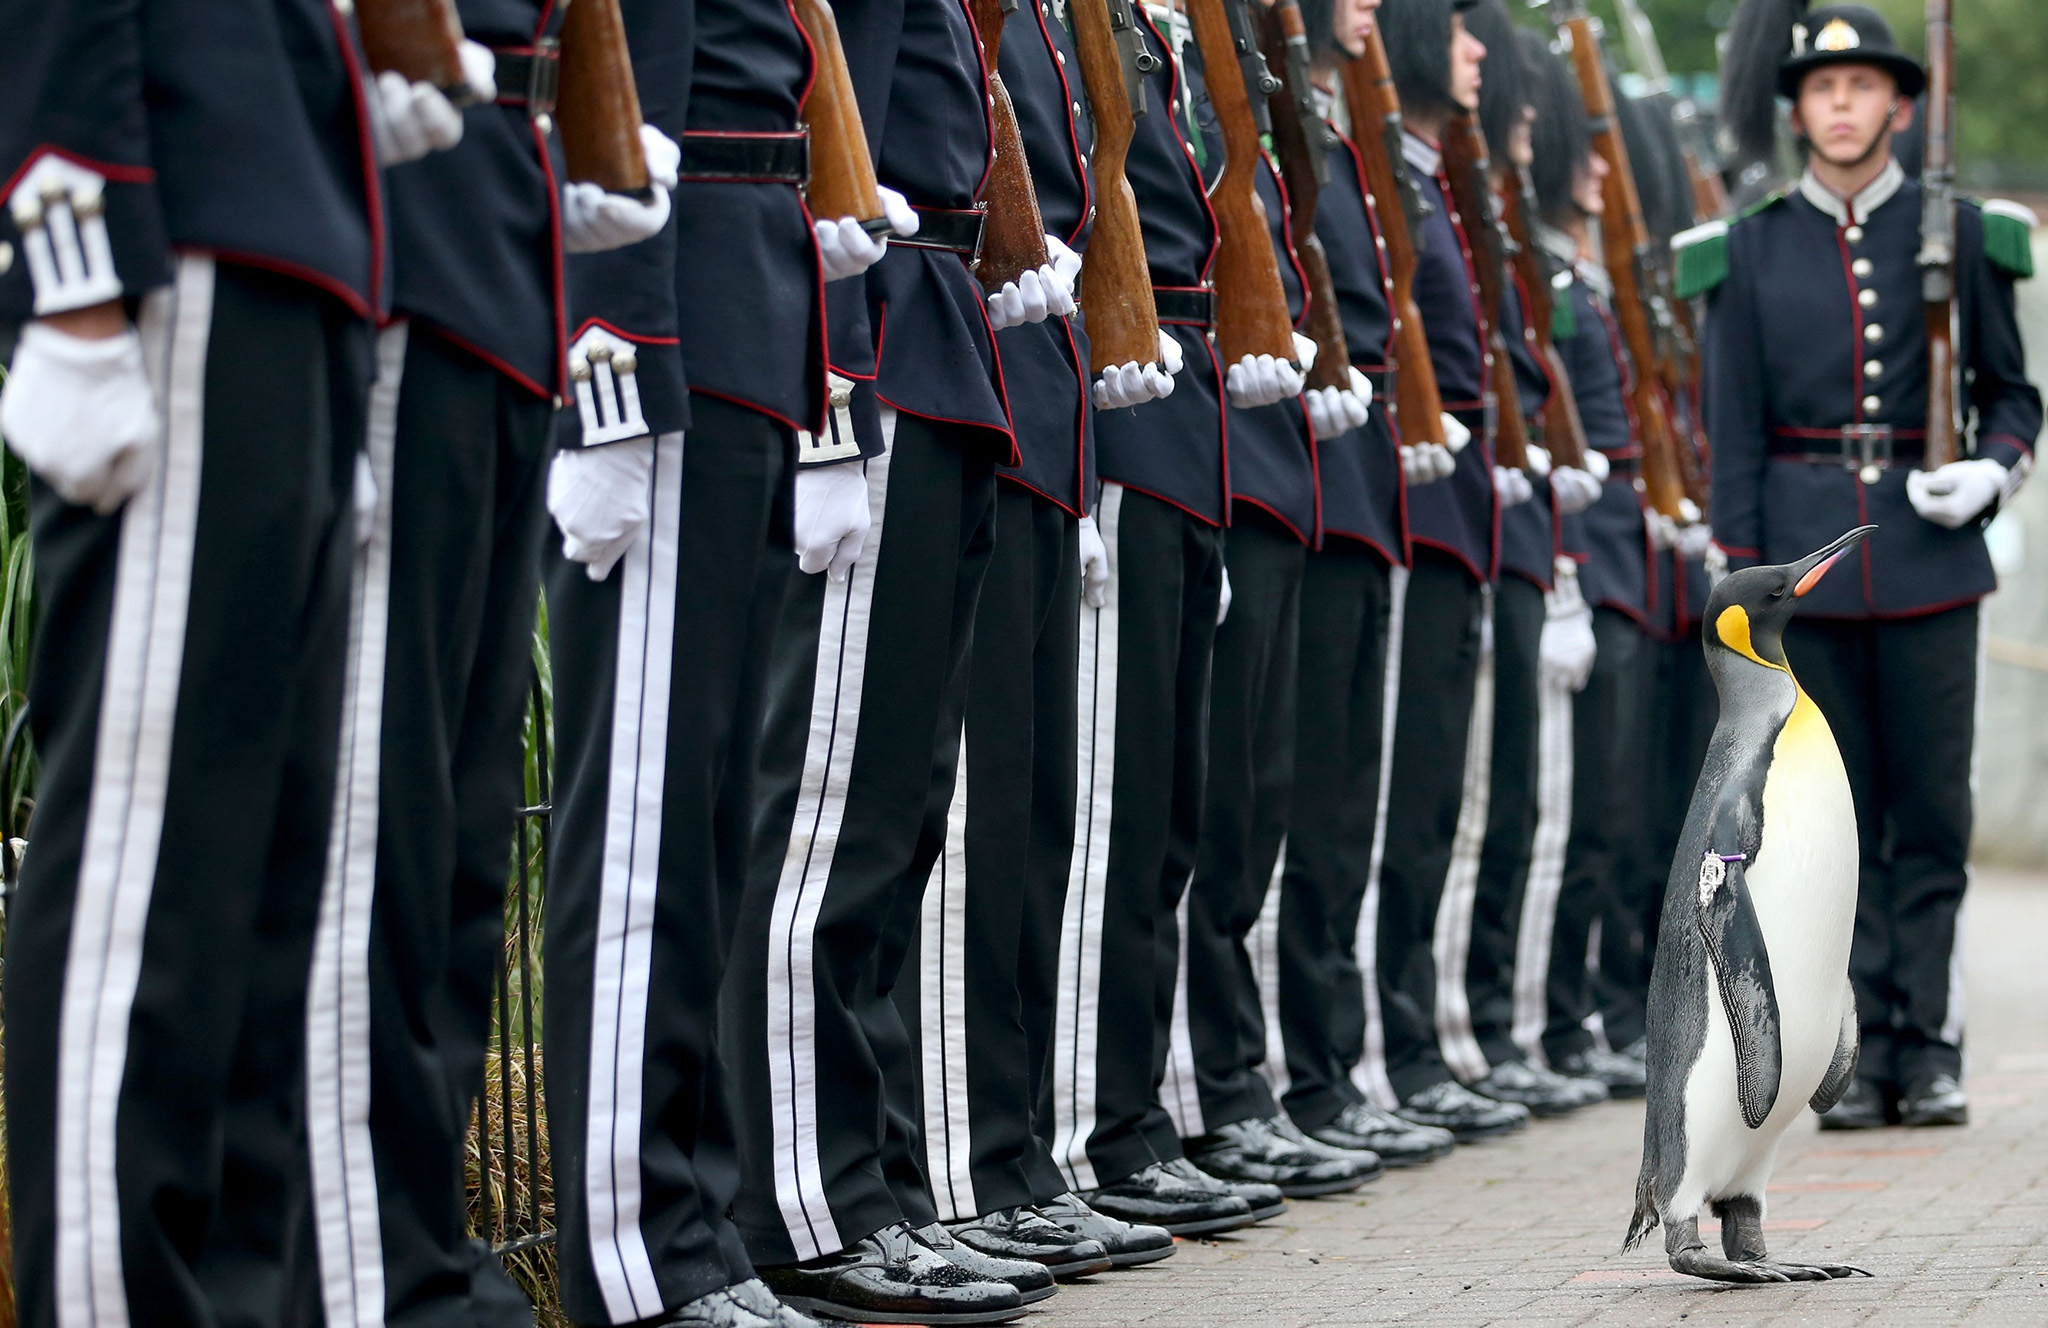 "Uniformed soldiers of the King of Norway's Guard parade for inspection by their mascot, king penguin Nils Olaf, who was awarded a knighthood in 2008, at RZSS Edinburgh Zoo, as they announce the penguin's promotion and new title of ""Brigadier Sir Nils Olav"". PRESS ASSOCIATION Photo. Picture date: Monday August 22, 2016. The prestigious title was awarded during a special ceremony which was attended by over 50 uniformed soldiers of His Majesty the King of Norway's Guard, who are taking part in The Royal Edinburgh Military Tattoo this year. Sir Nils paraded his way up Penguin Walk, whilst inspecting the soldiers of the Guard. The regal, black, white and yellow bird is the mascot of His Majesty the King of Norway's Guard and his honour is approved by King Harald V of Norway. See PA story SCOTLAND Penguin. Photo credit should read: Jane Barlow/PA Wire"